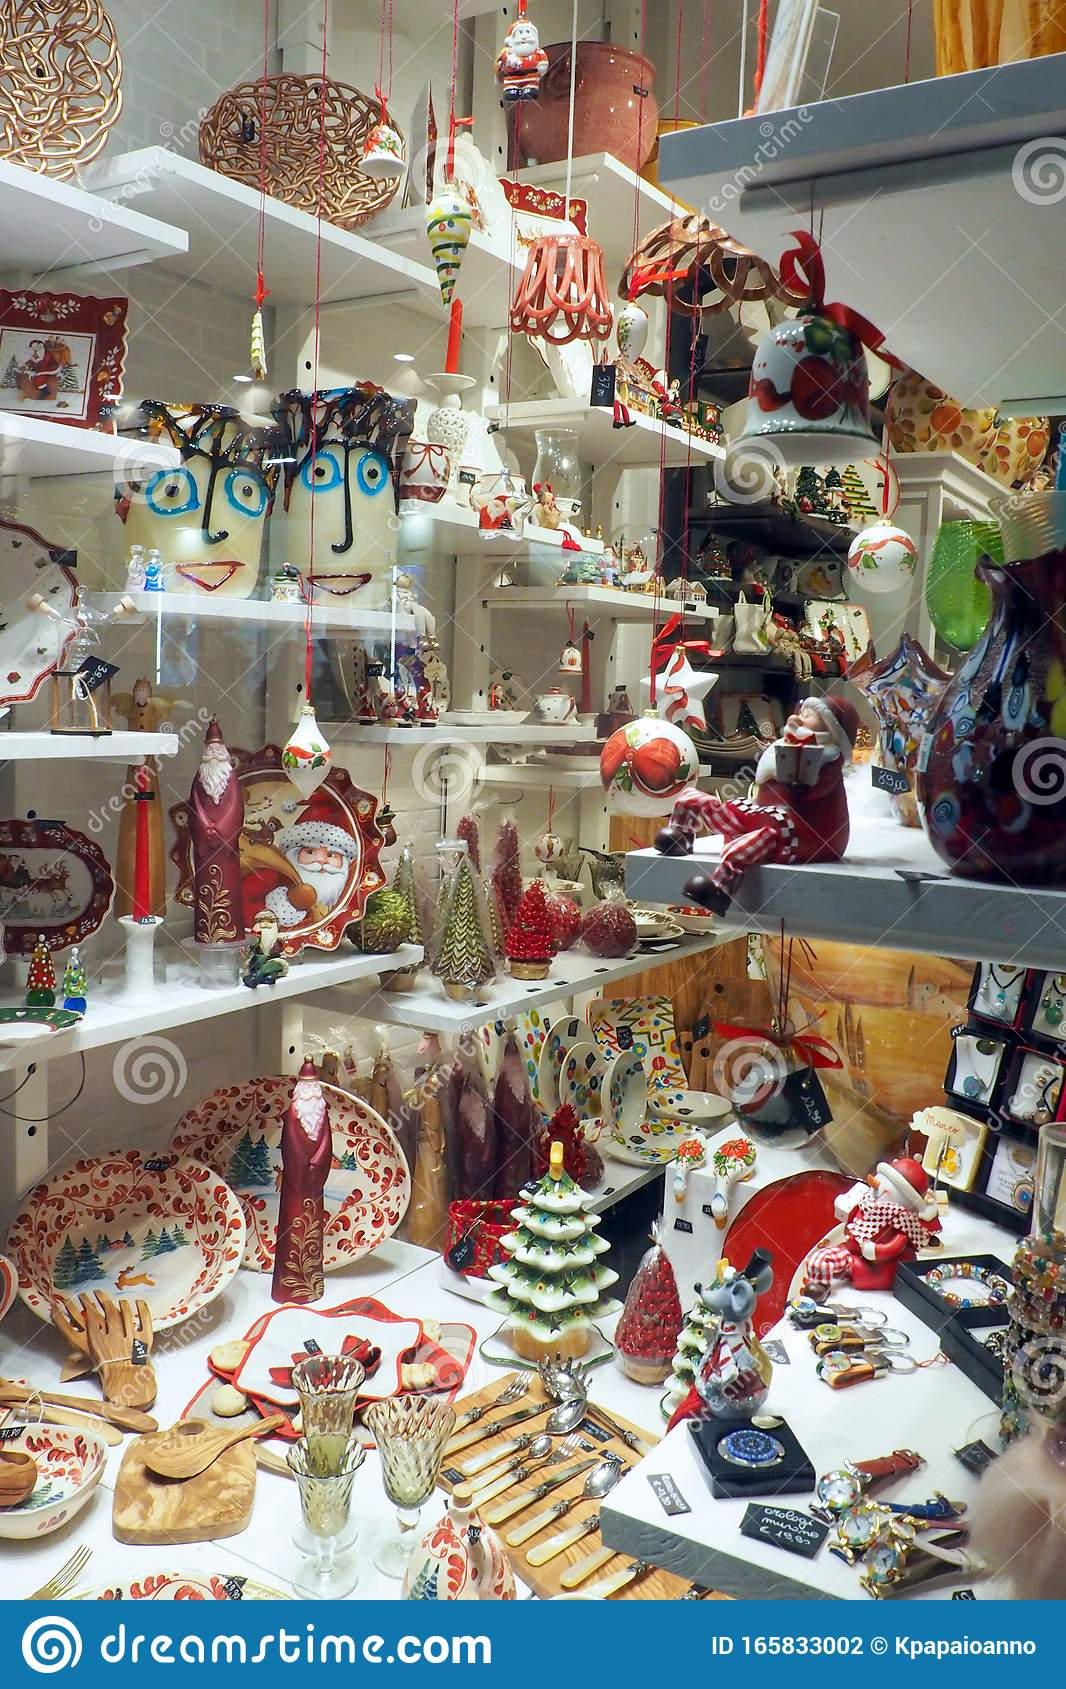 Christmas Decoration And Gift Shop In Rome Italy Editorial Photography Image Of Commercial Items 165833002